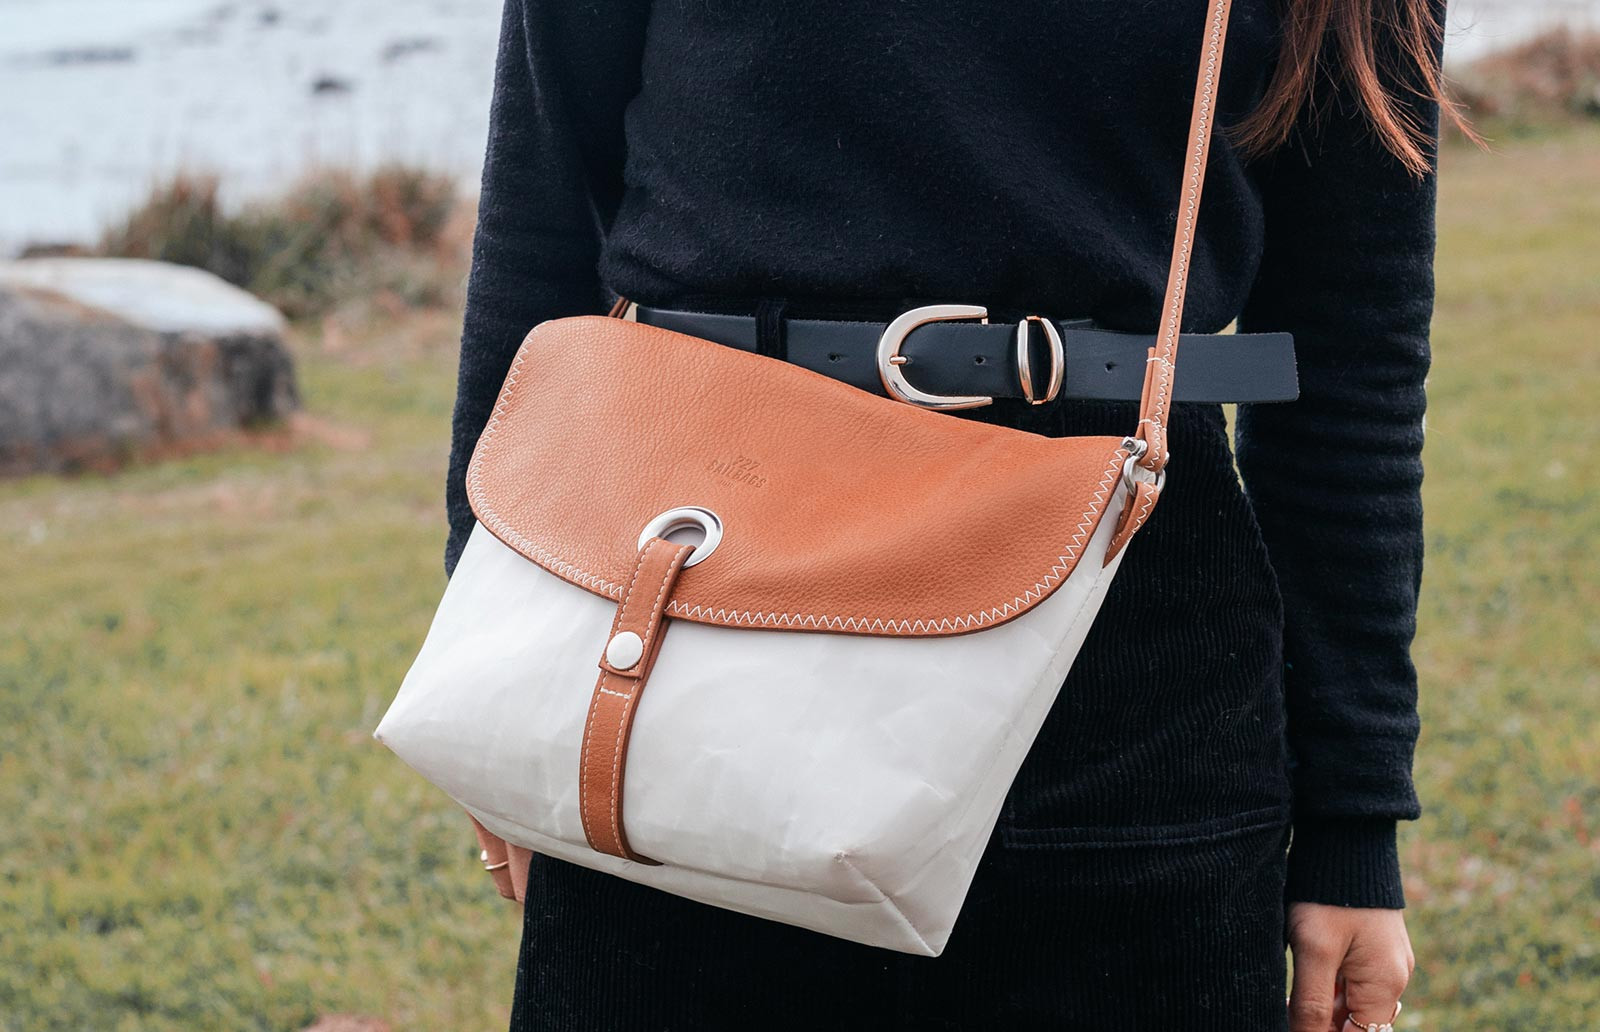 727Sailbags satchels made of recycled sailcloth